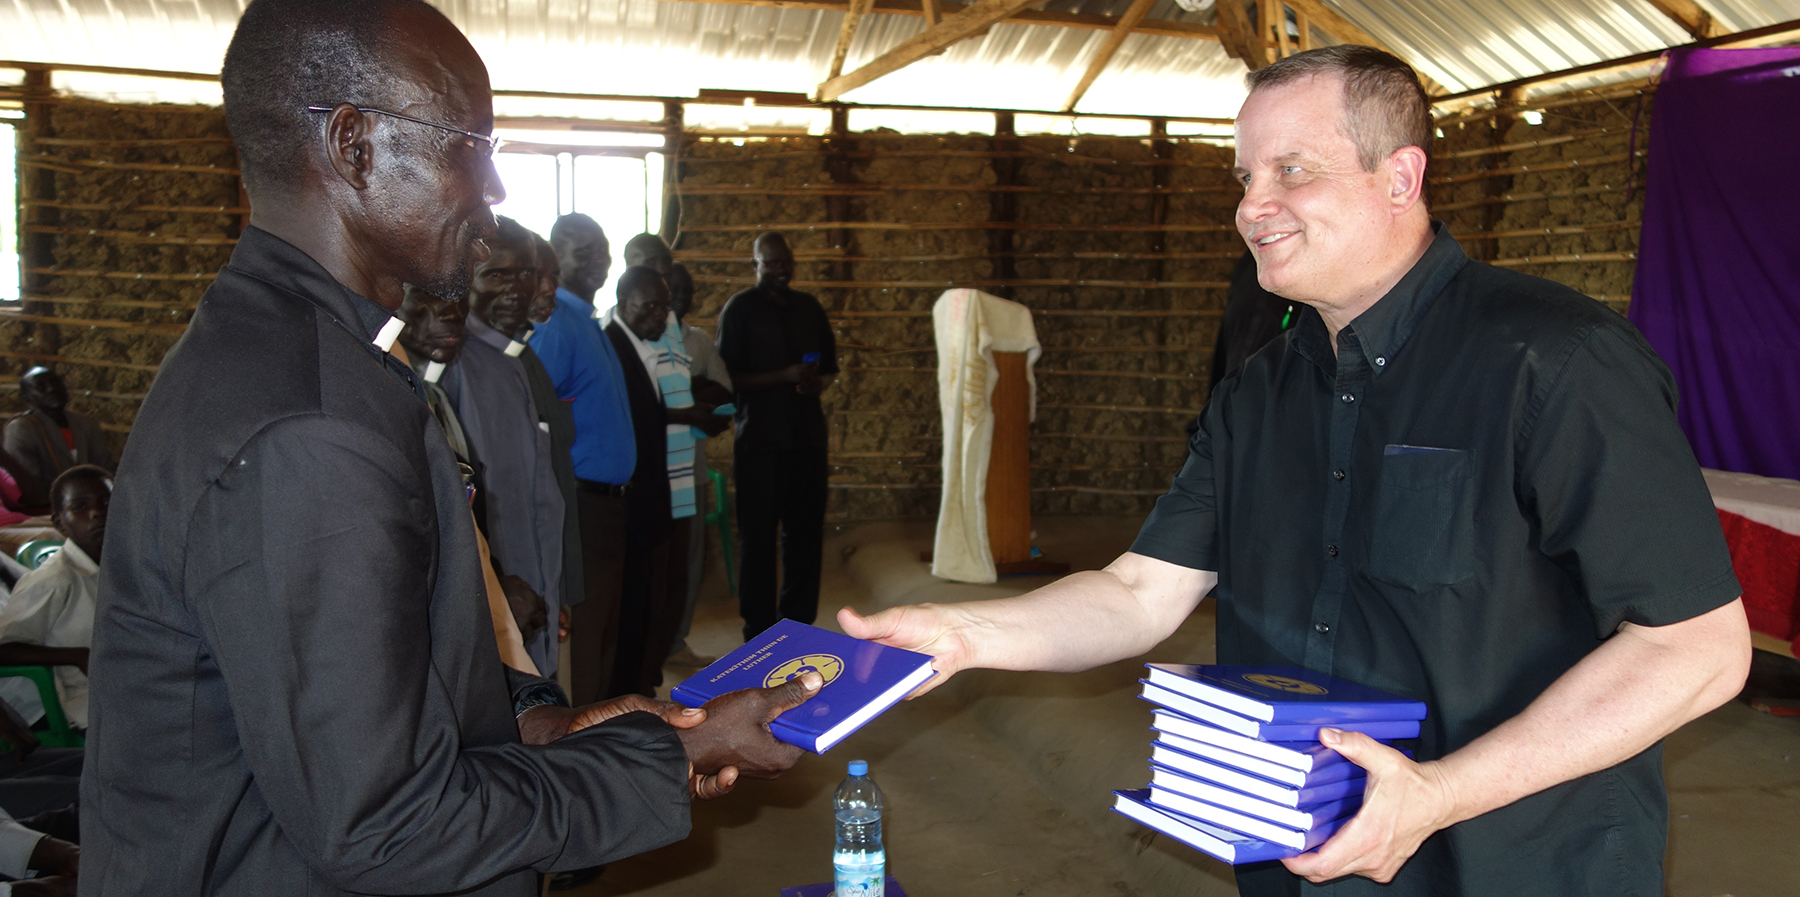 Sudan Heise Distributing Catechism To Pastor